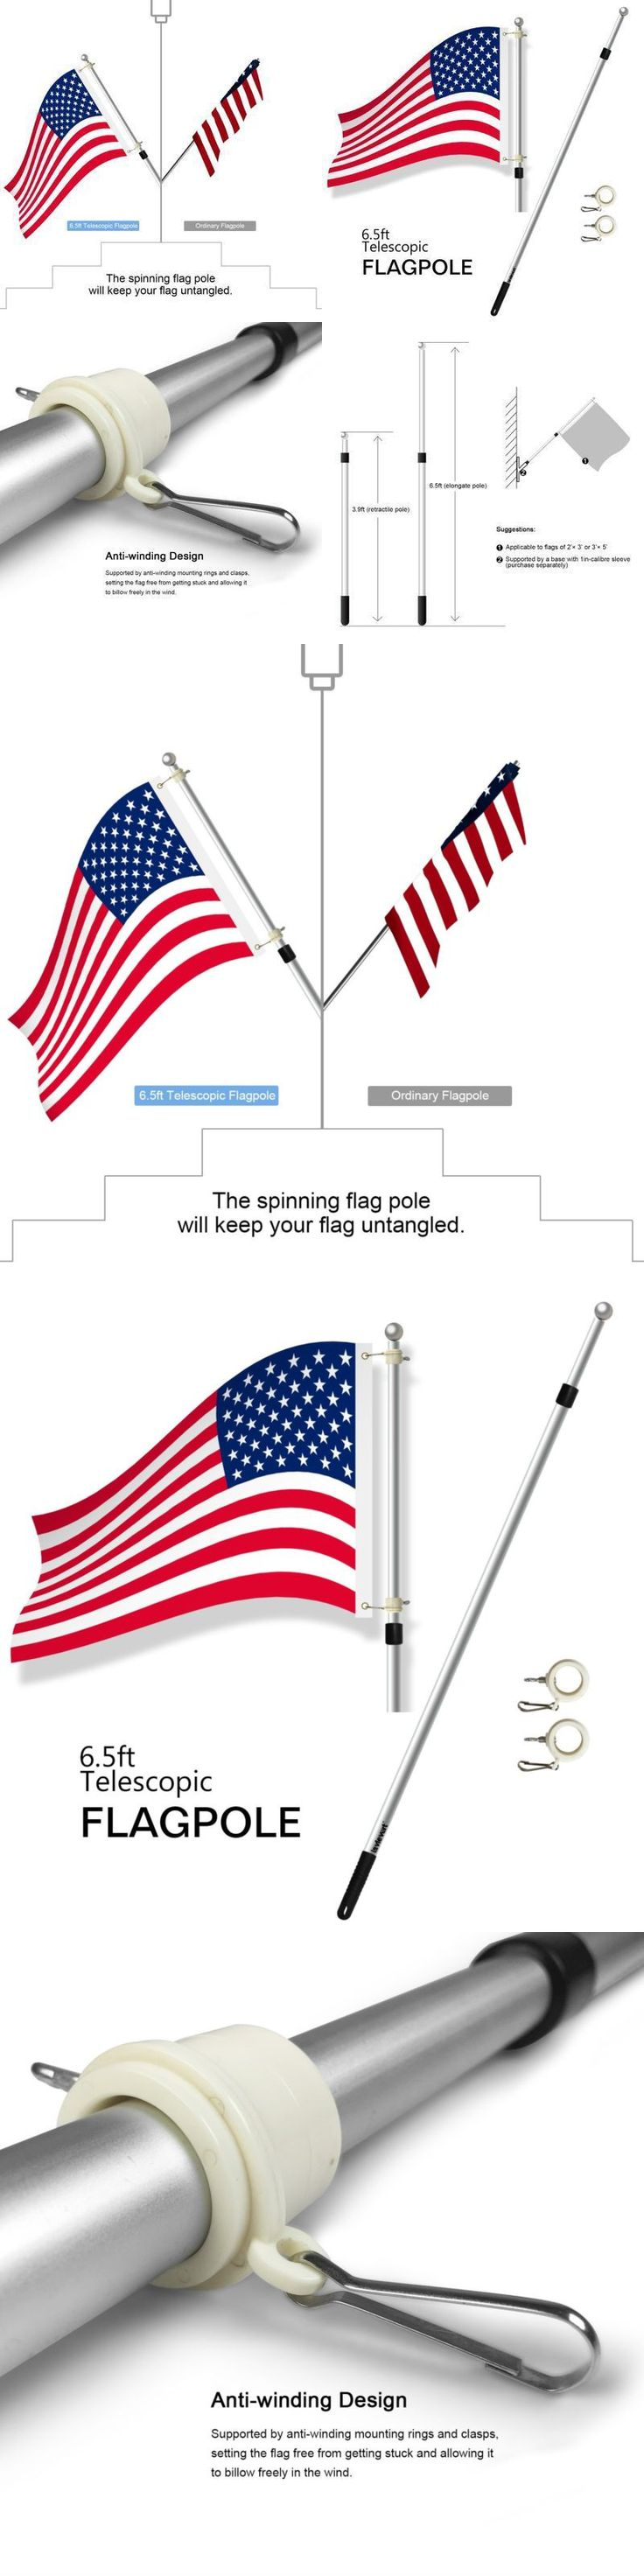 Flag Poles and Parts 43536: New 20 Portable Telescopic Flagpole Aluminum Lightweight Tailgate Flag Pole New -> BUY IT NOW ONLY: $32.11 on eBay!